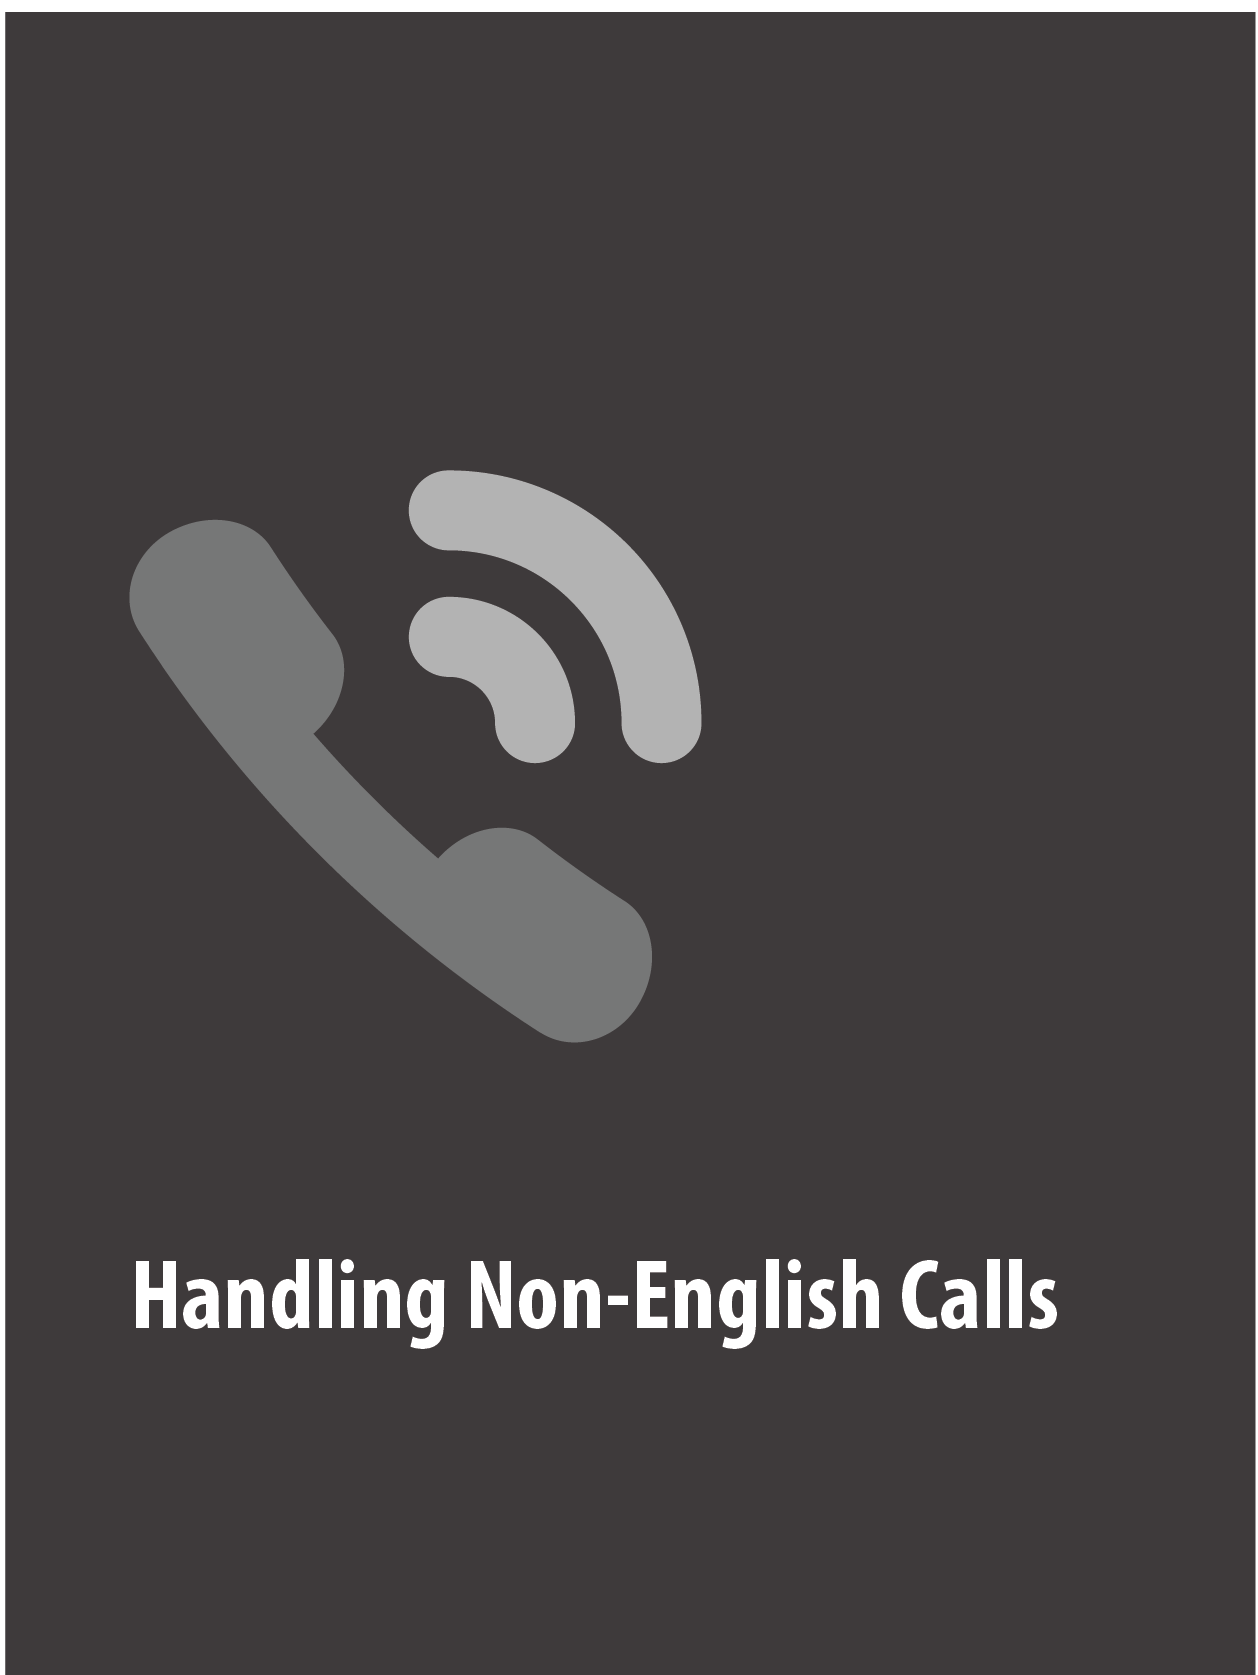 Handling-Non-English-Calls - Cover.png